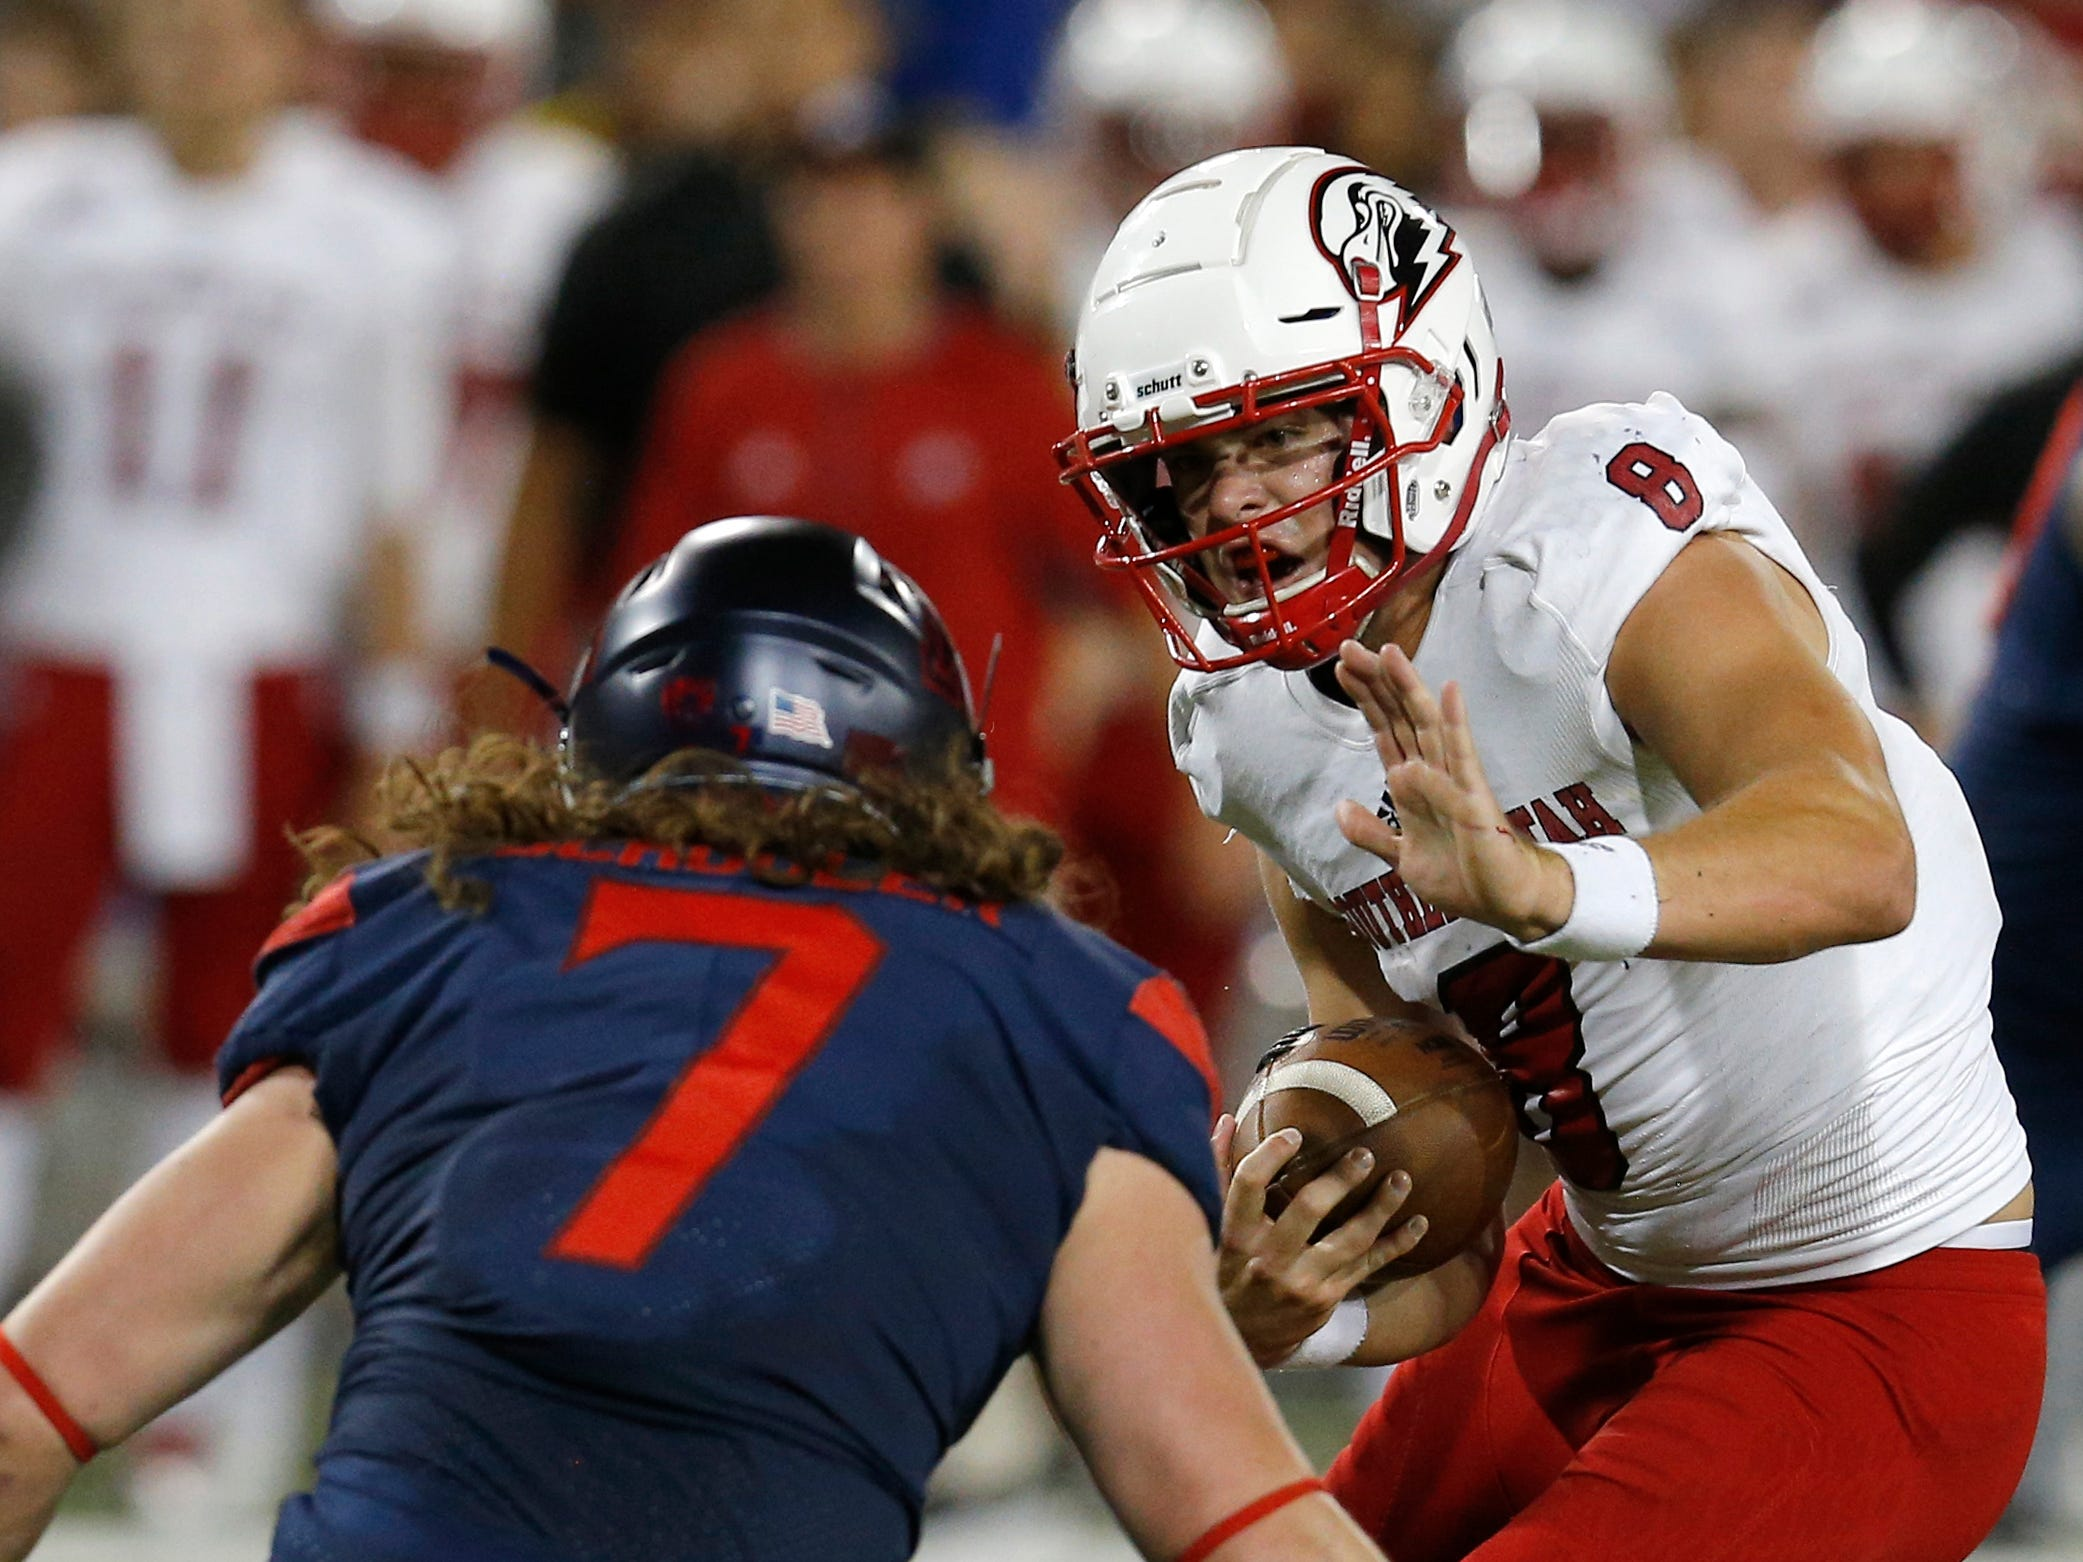 Southern Utah quarterback Chris Helbig (8) stiff-arms Arizona linebacker Colin Schooler in the first half during an NCAA college football game, Saturday, Sept. 15, 2018, in Tucson, Ariz. (AP Photo/Rick Scuteri)